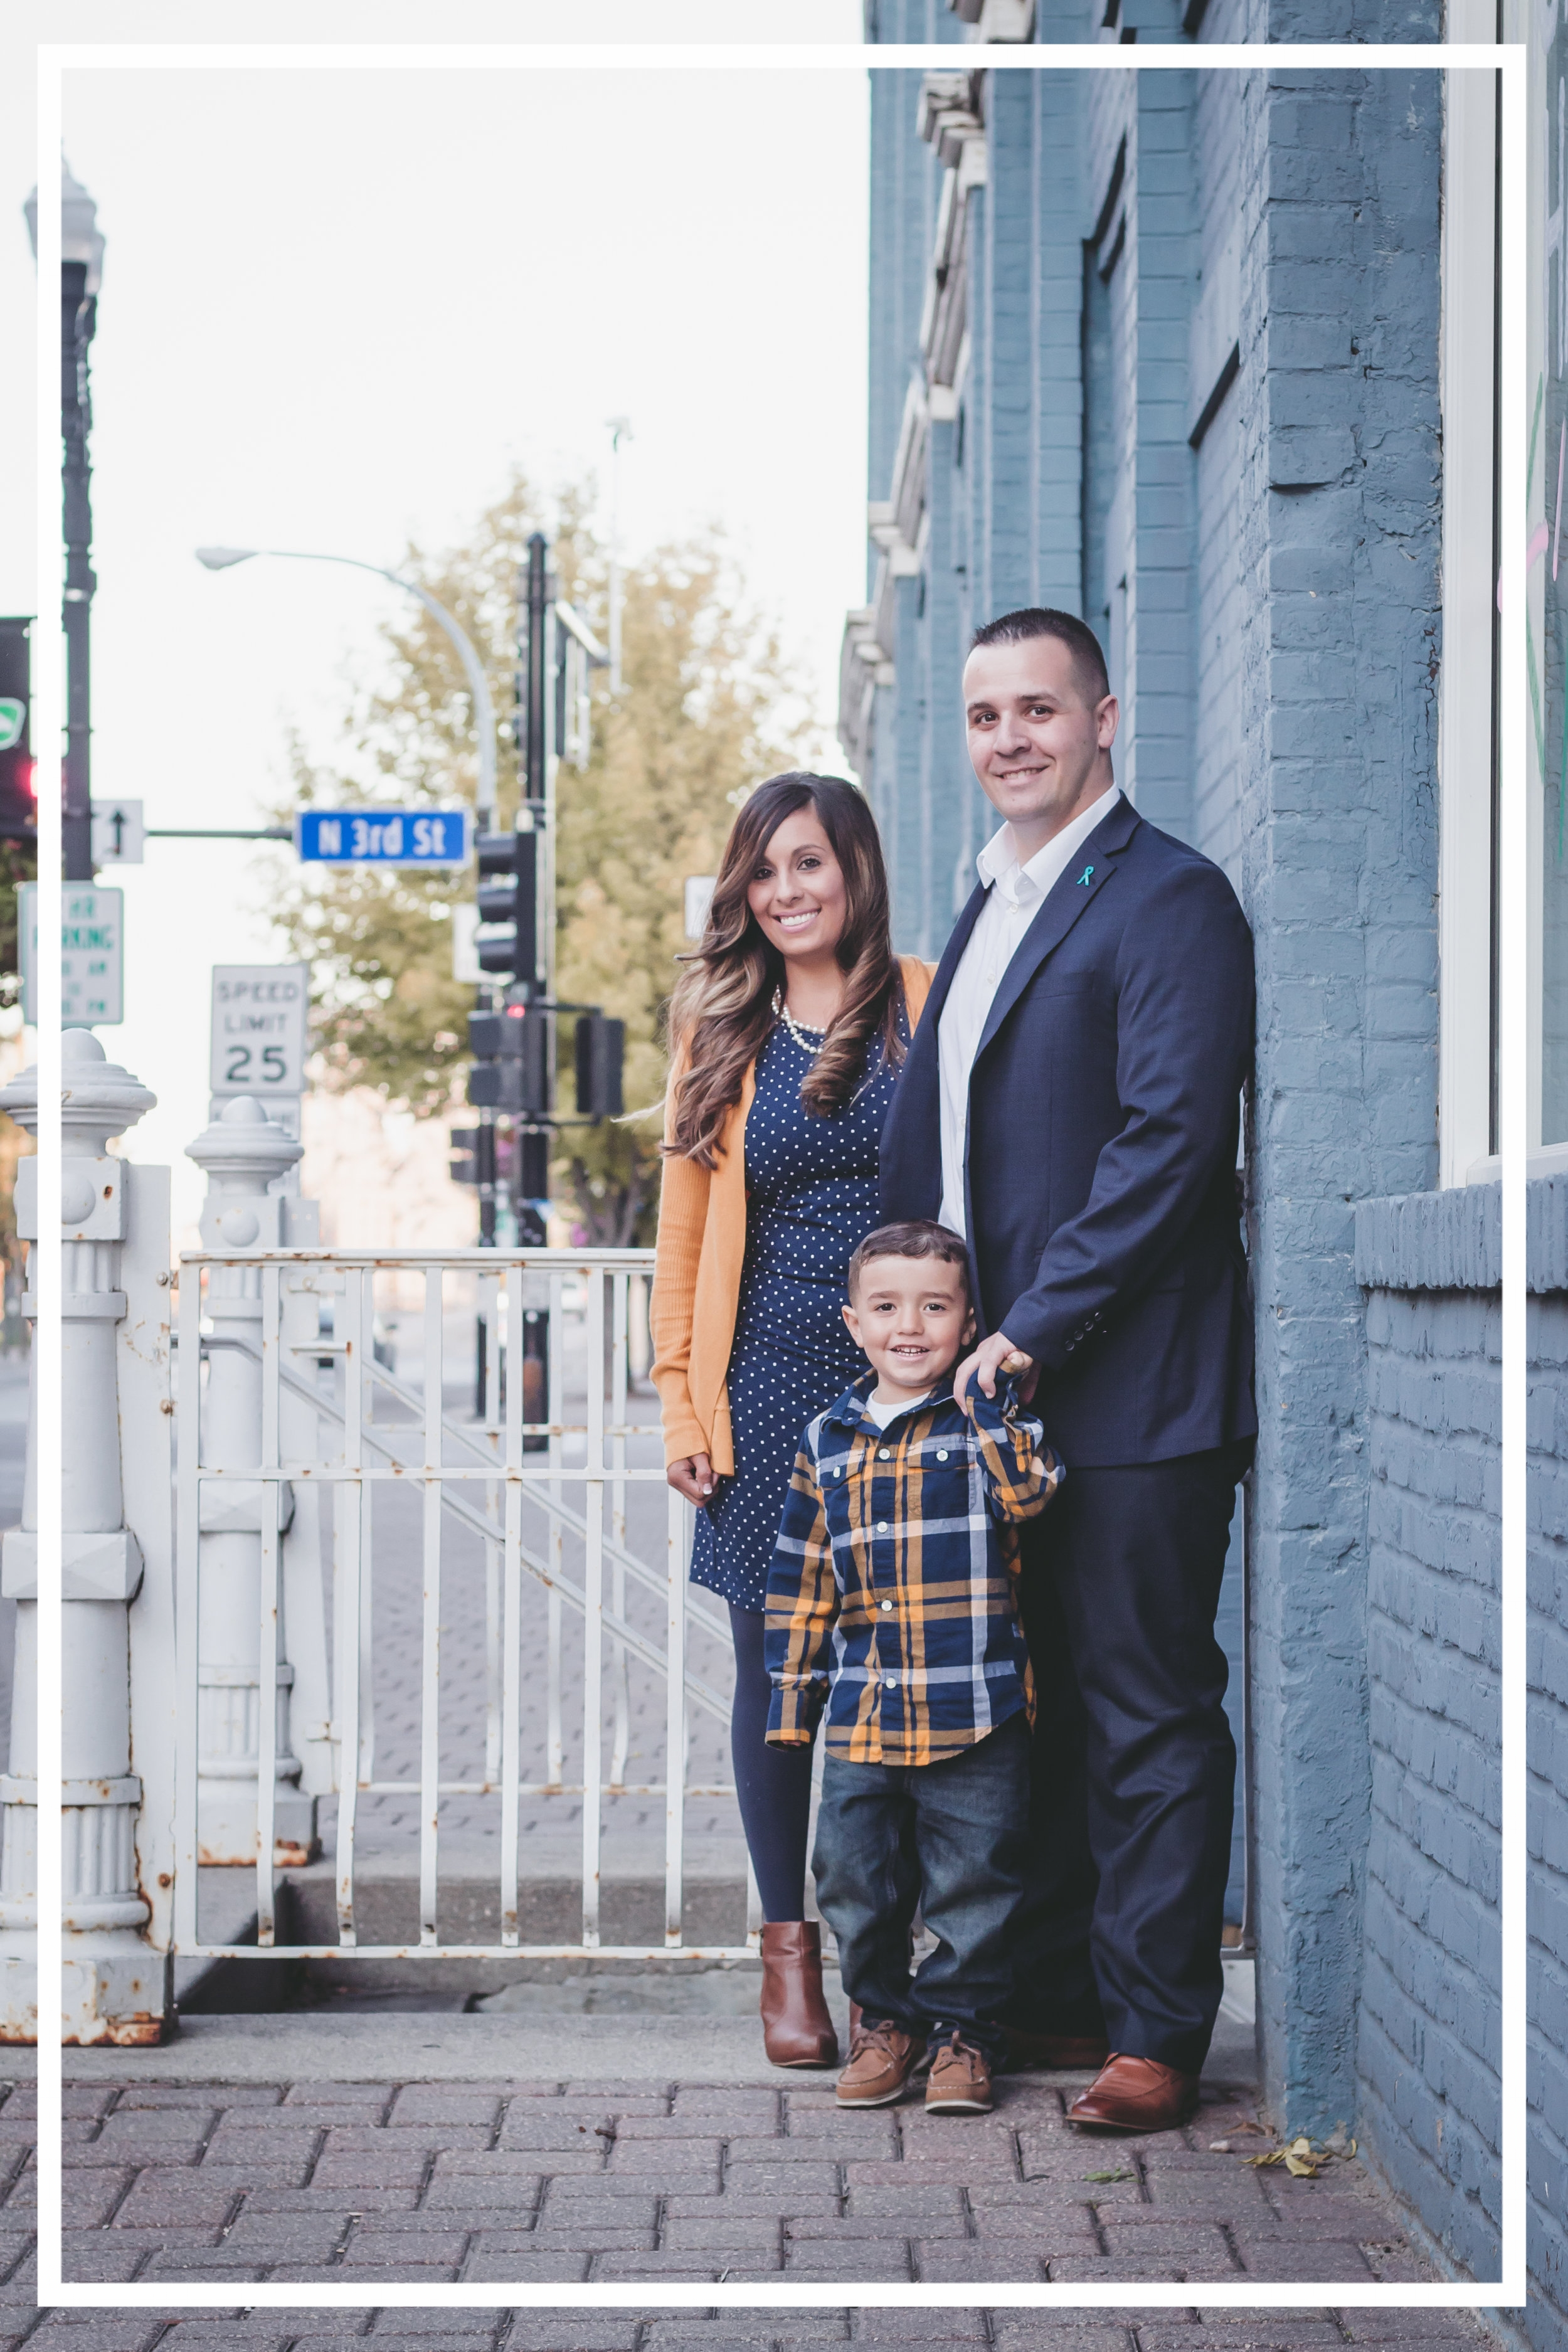 Danny Weigel and his family in downtown Grand Forks.